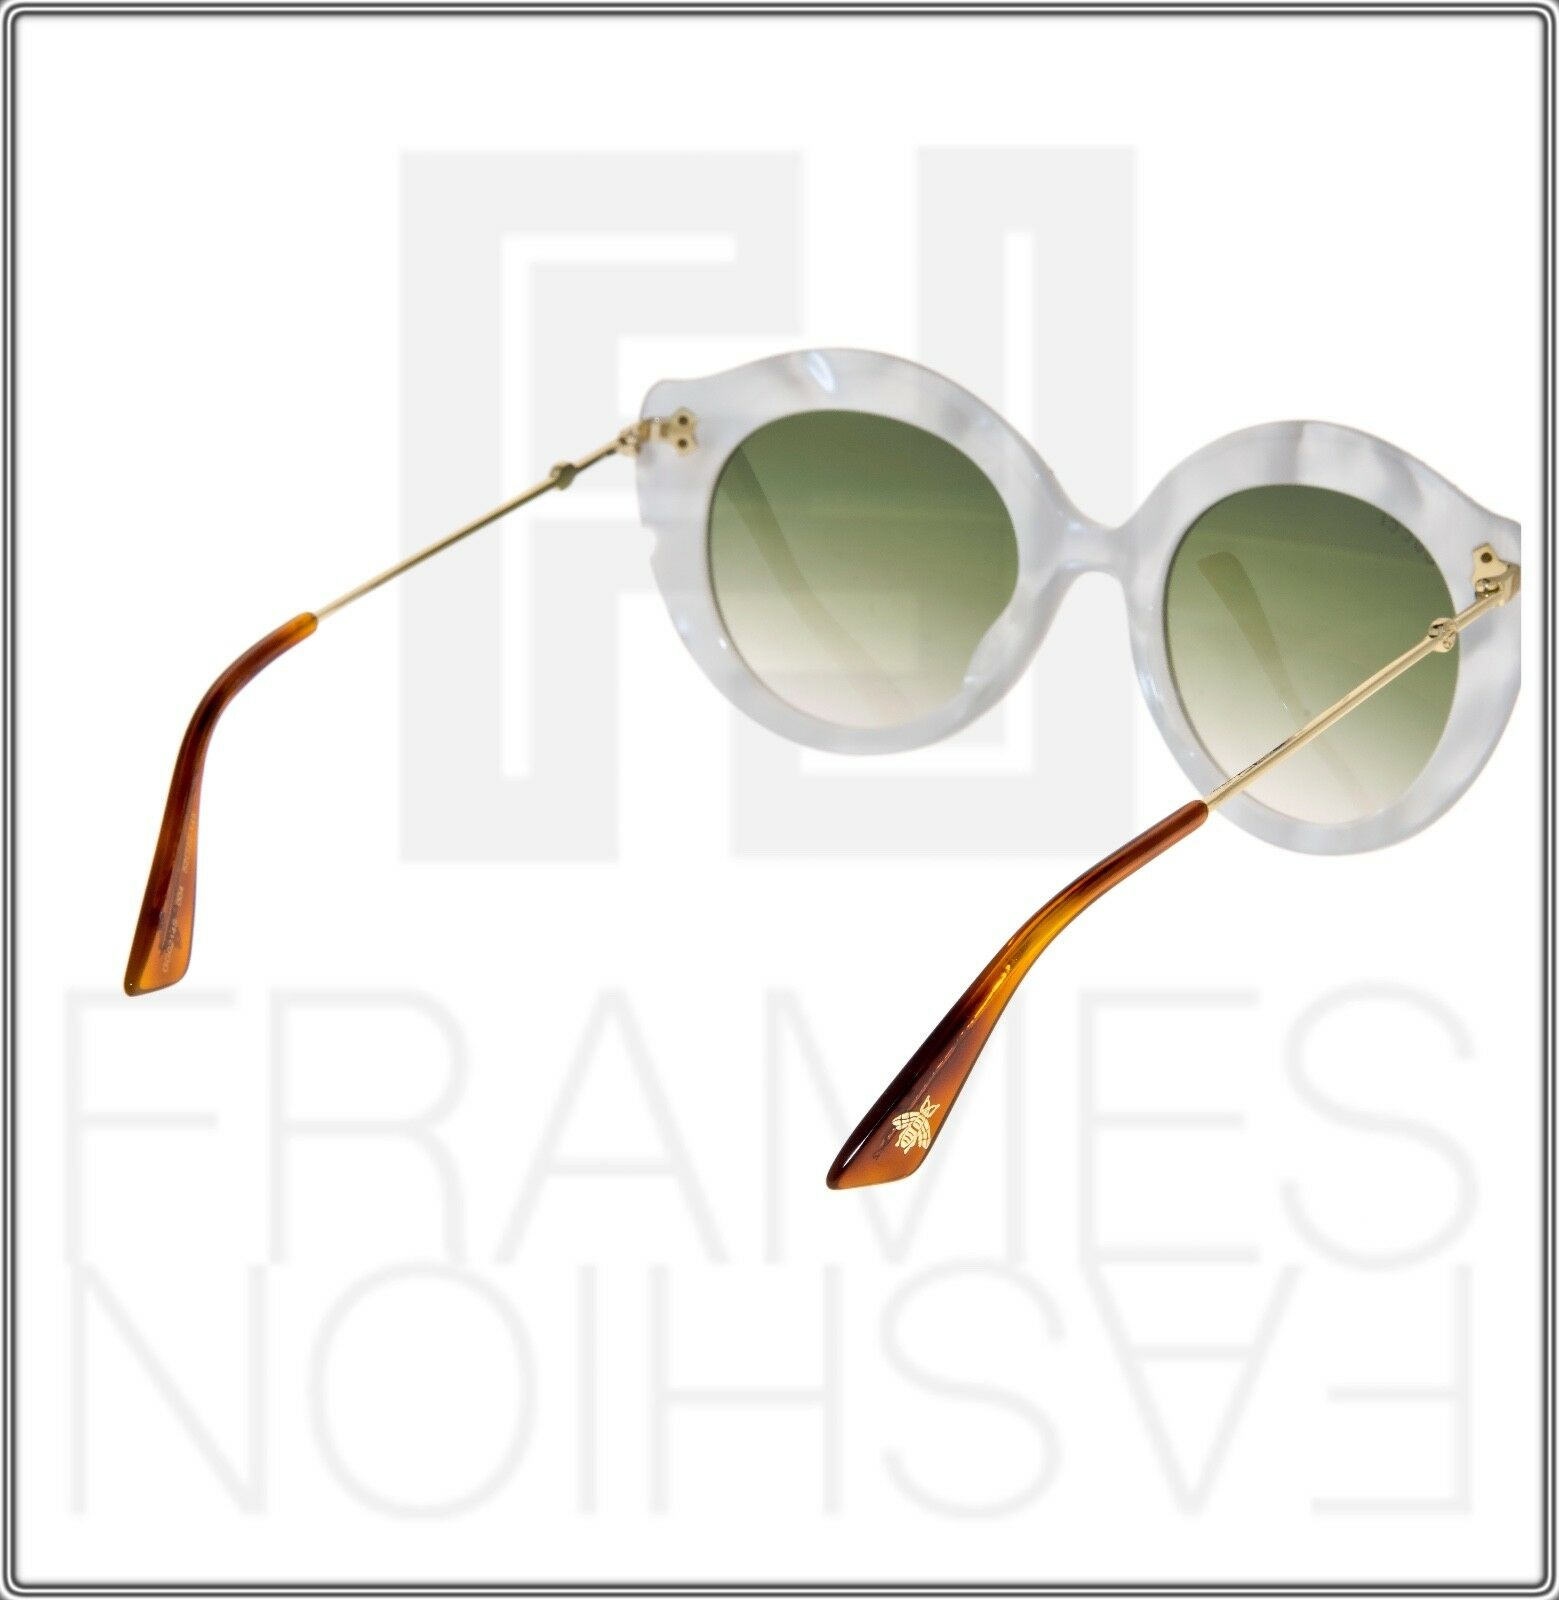 7aaa909a61 Gucci Crystal Lips 0214 Cat Eye White Pearl Green Gradient Sunglasses  Gg0214s for sale online